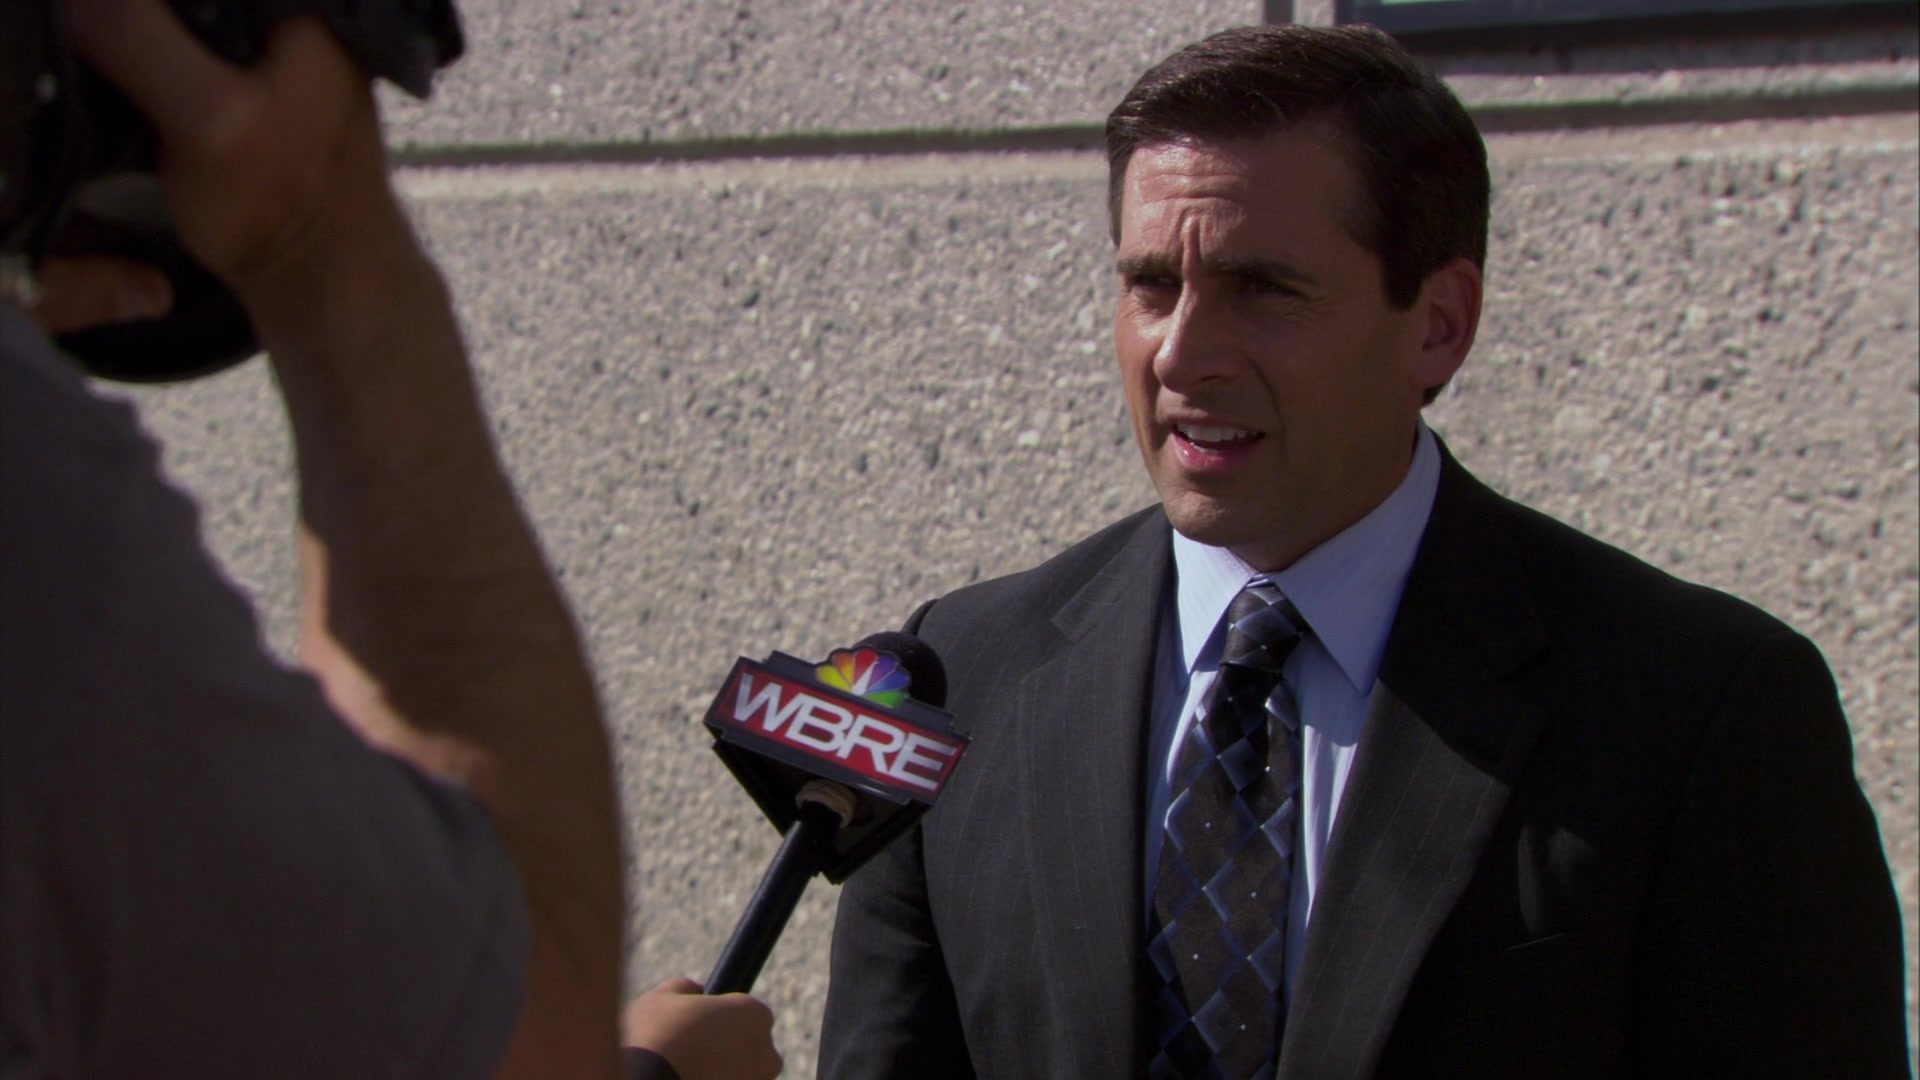 Wbre Tv Channel Starring Steve Carell Michael Scott In